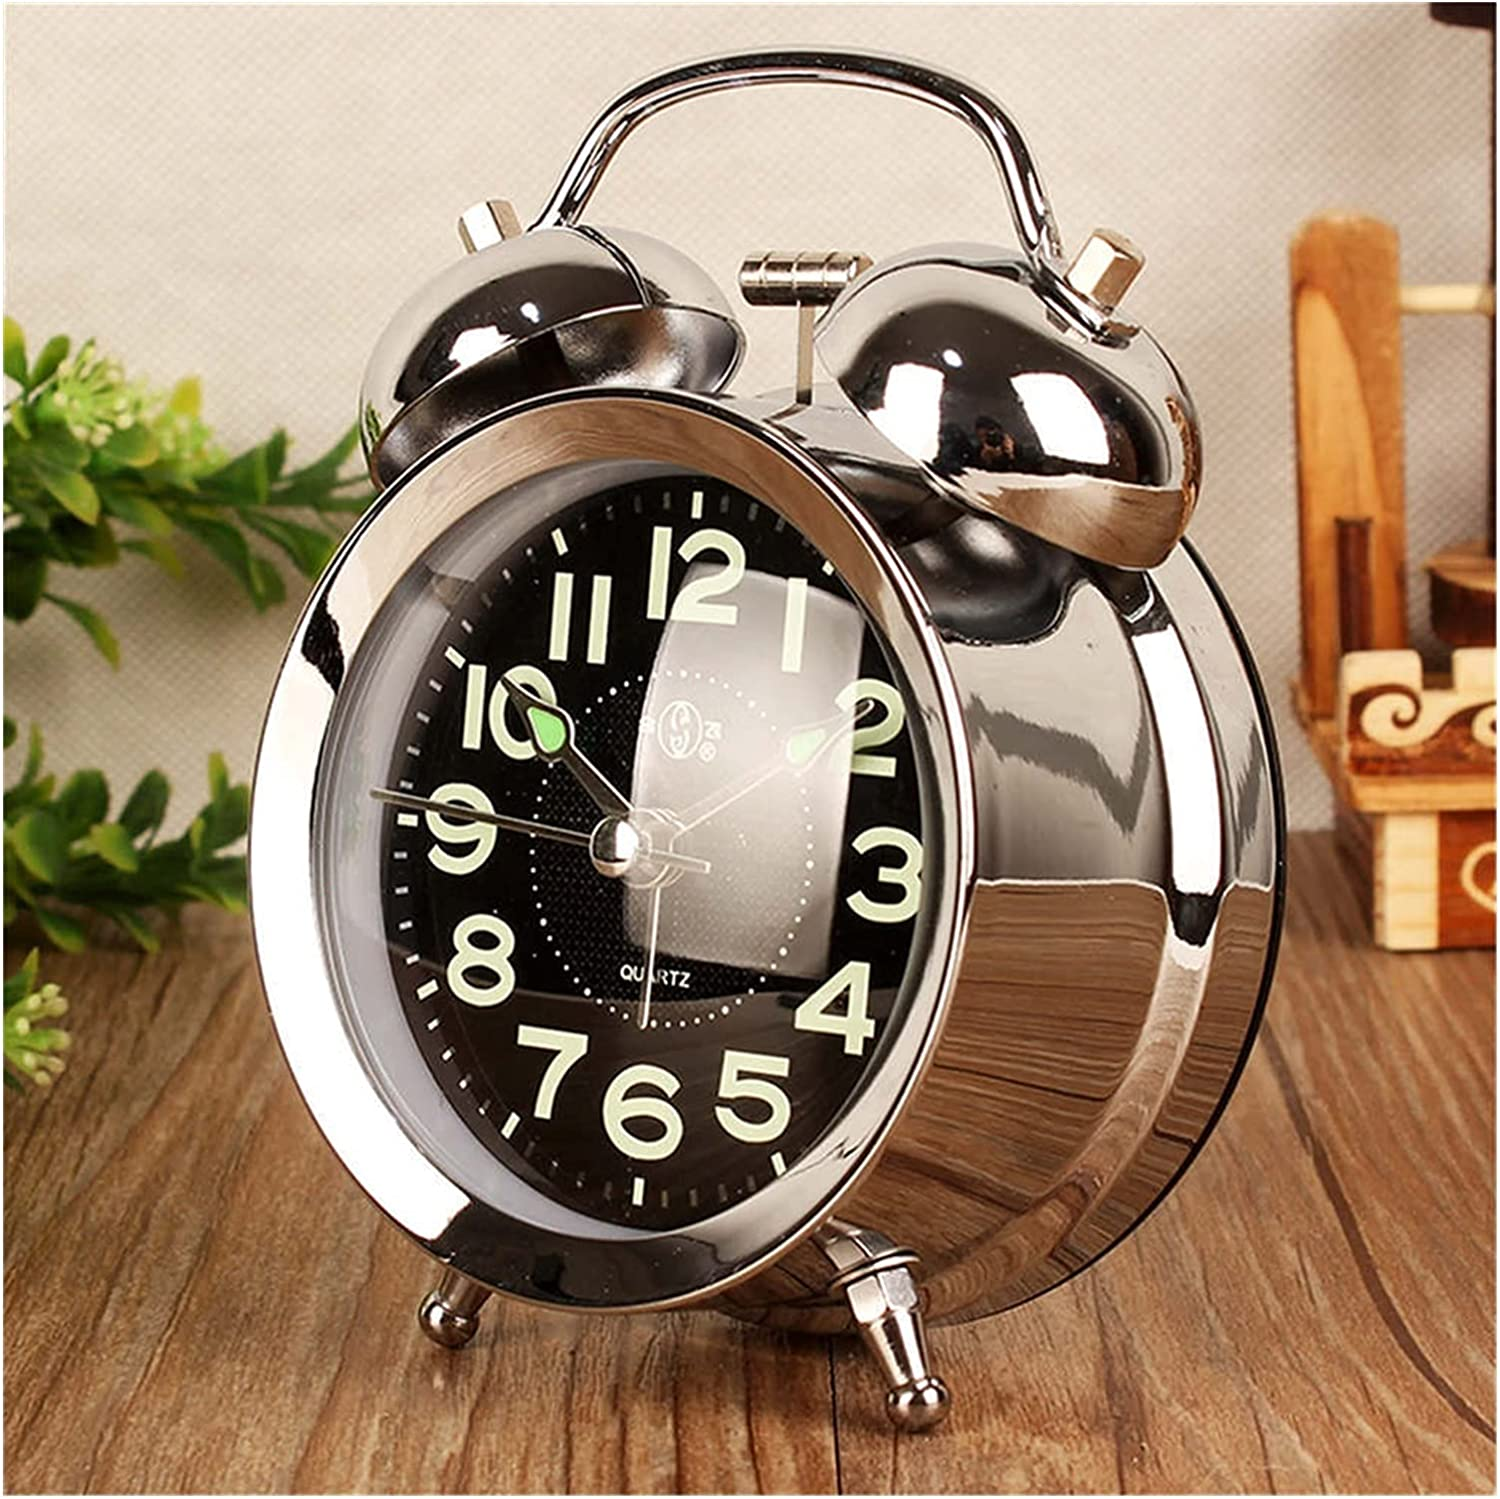 yqs Alarm Clock Metal Ringing OFFer Nig Ranking TOP3 with Bedside